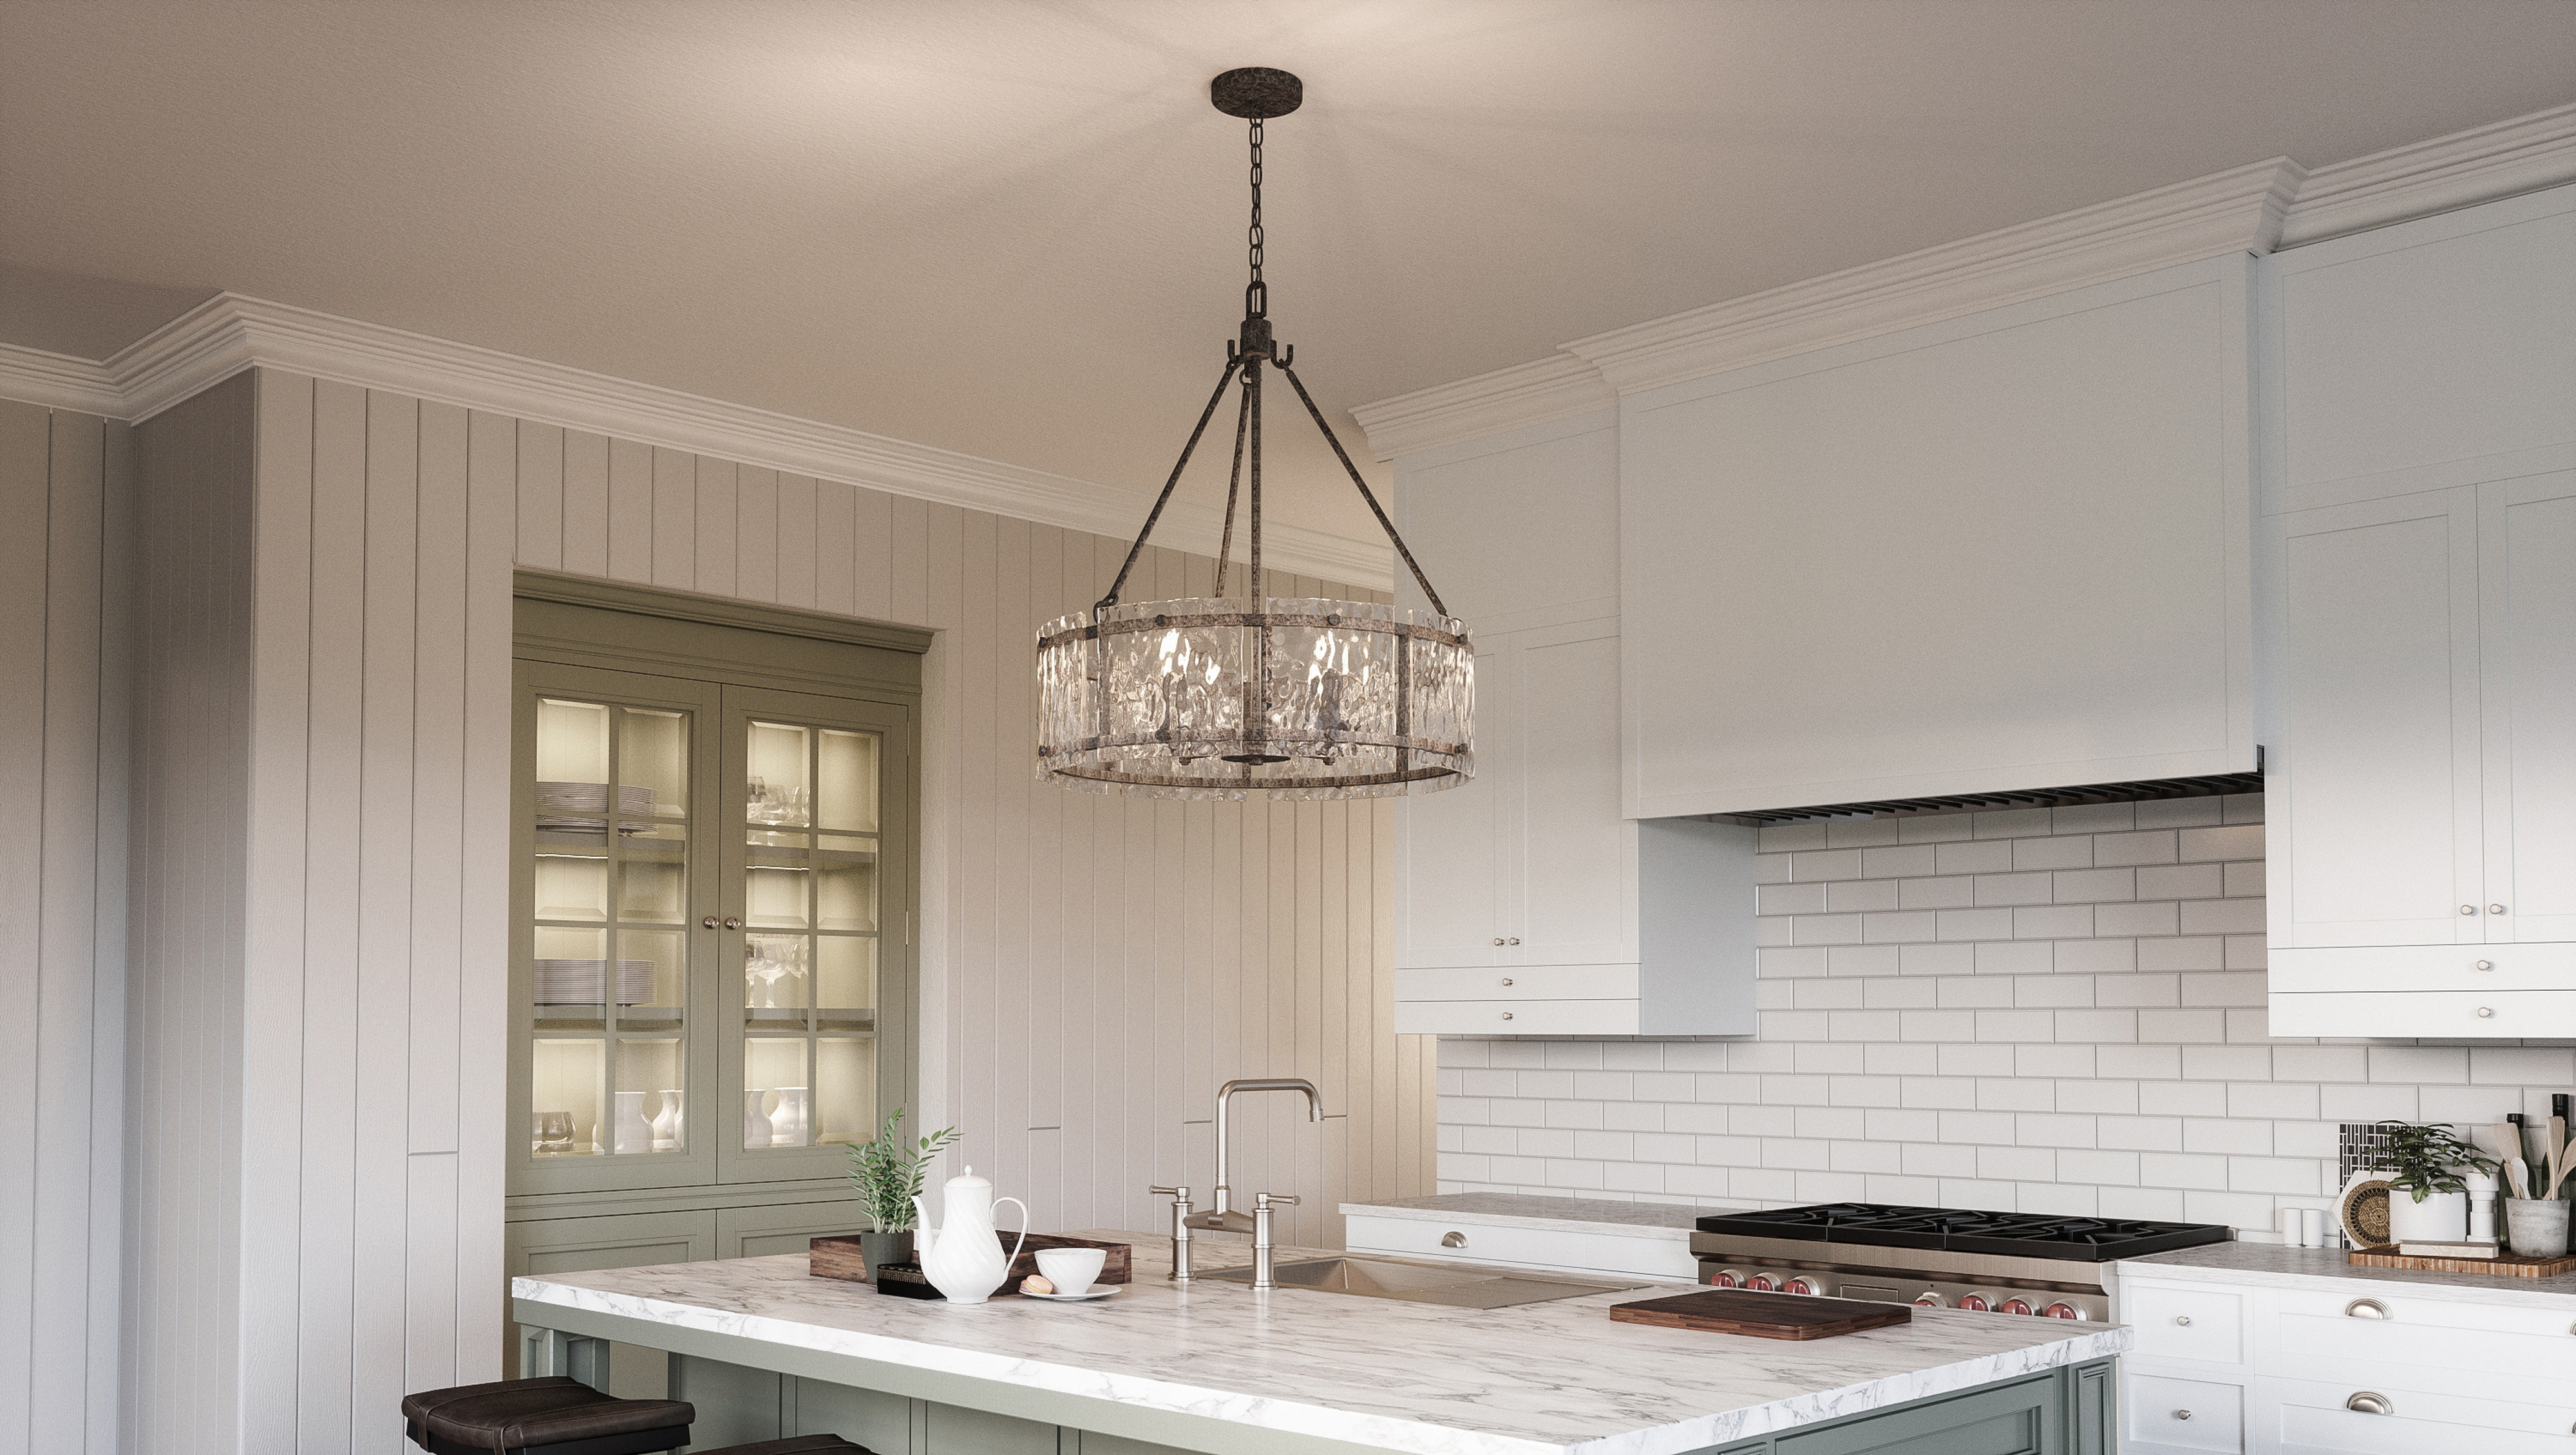 Hasse 5-Light Drum Chandelier with regard to Wightman Drum Chandeliers (Image 15 of 30)